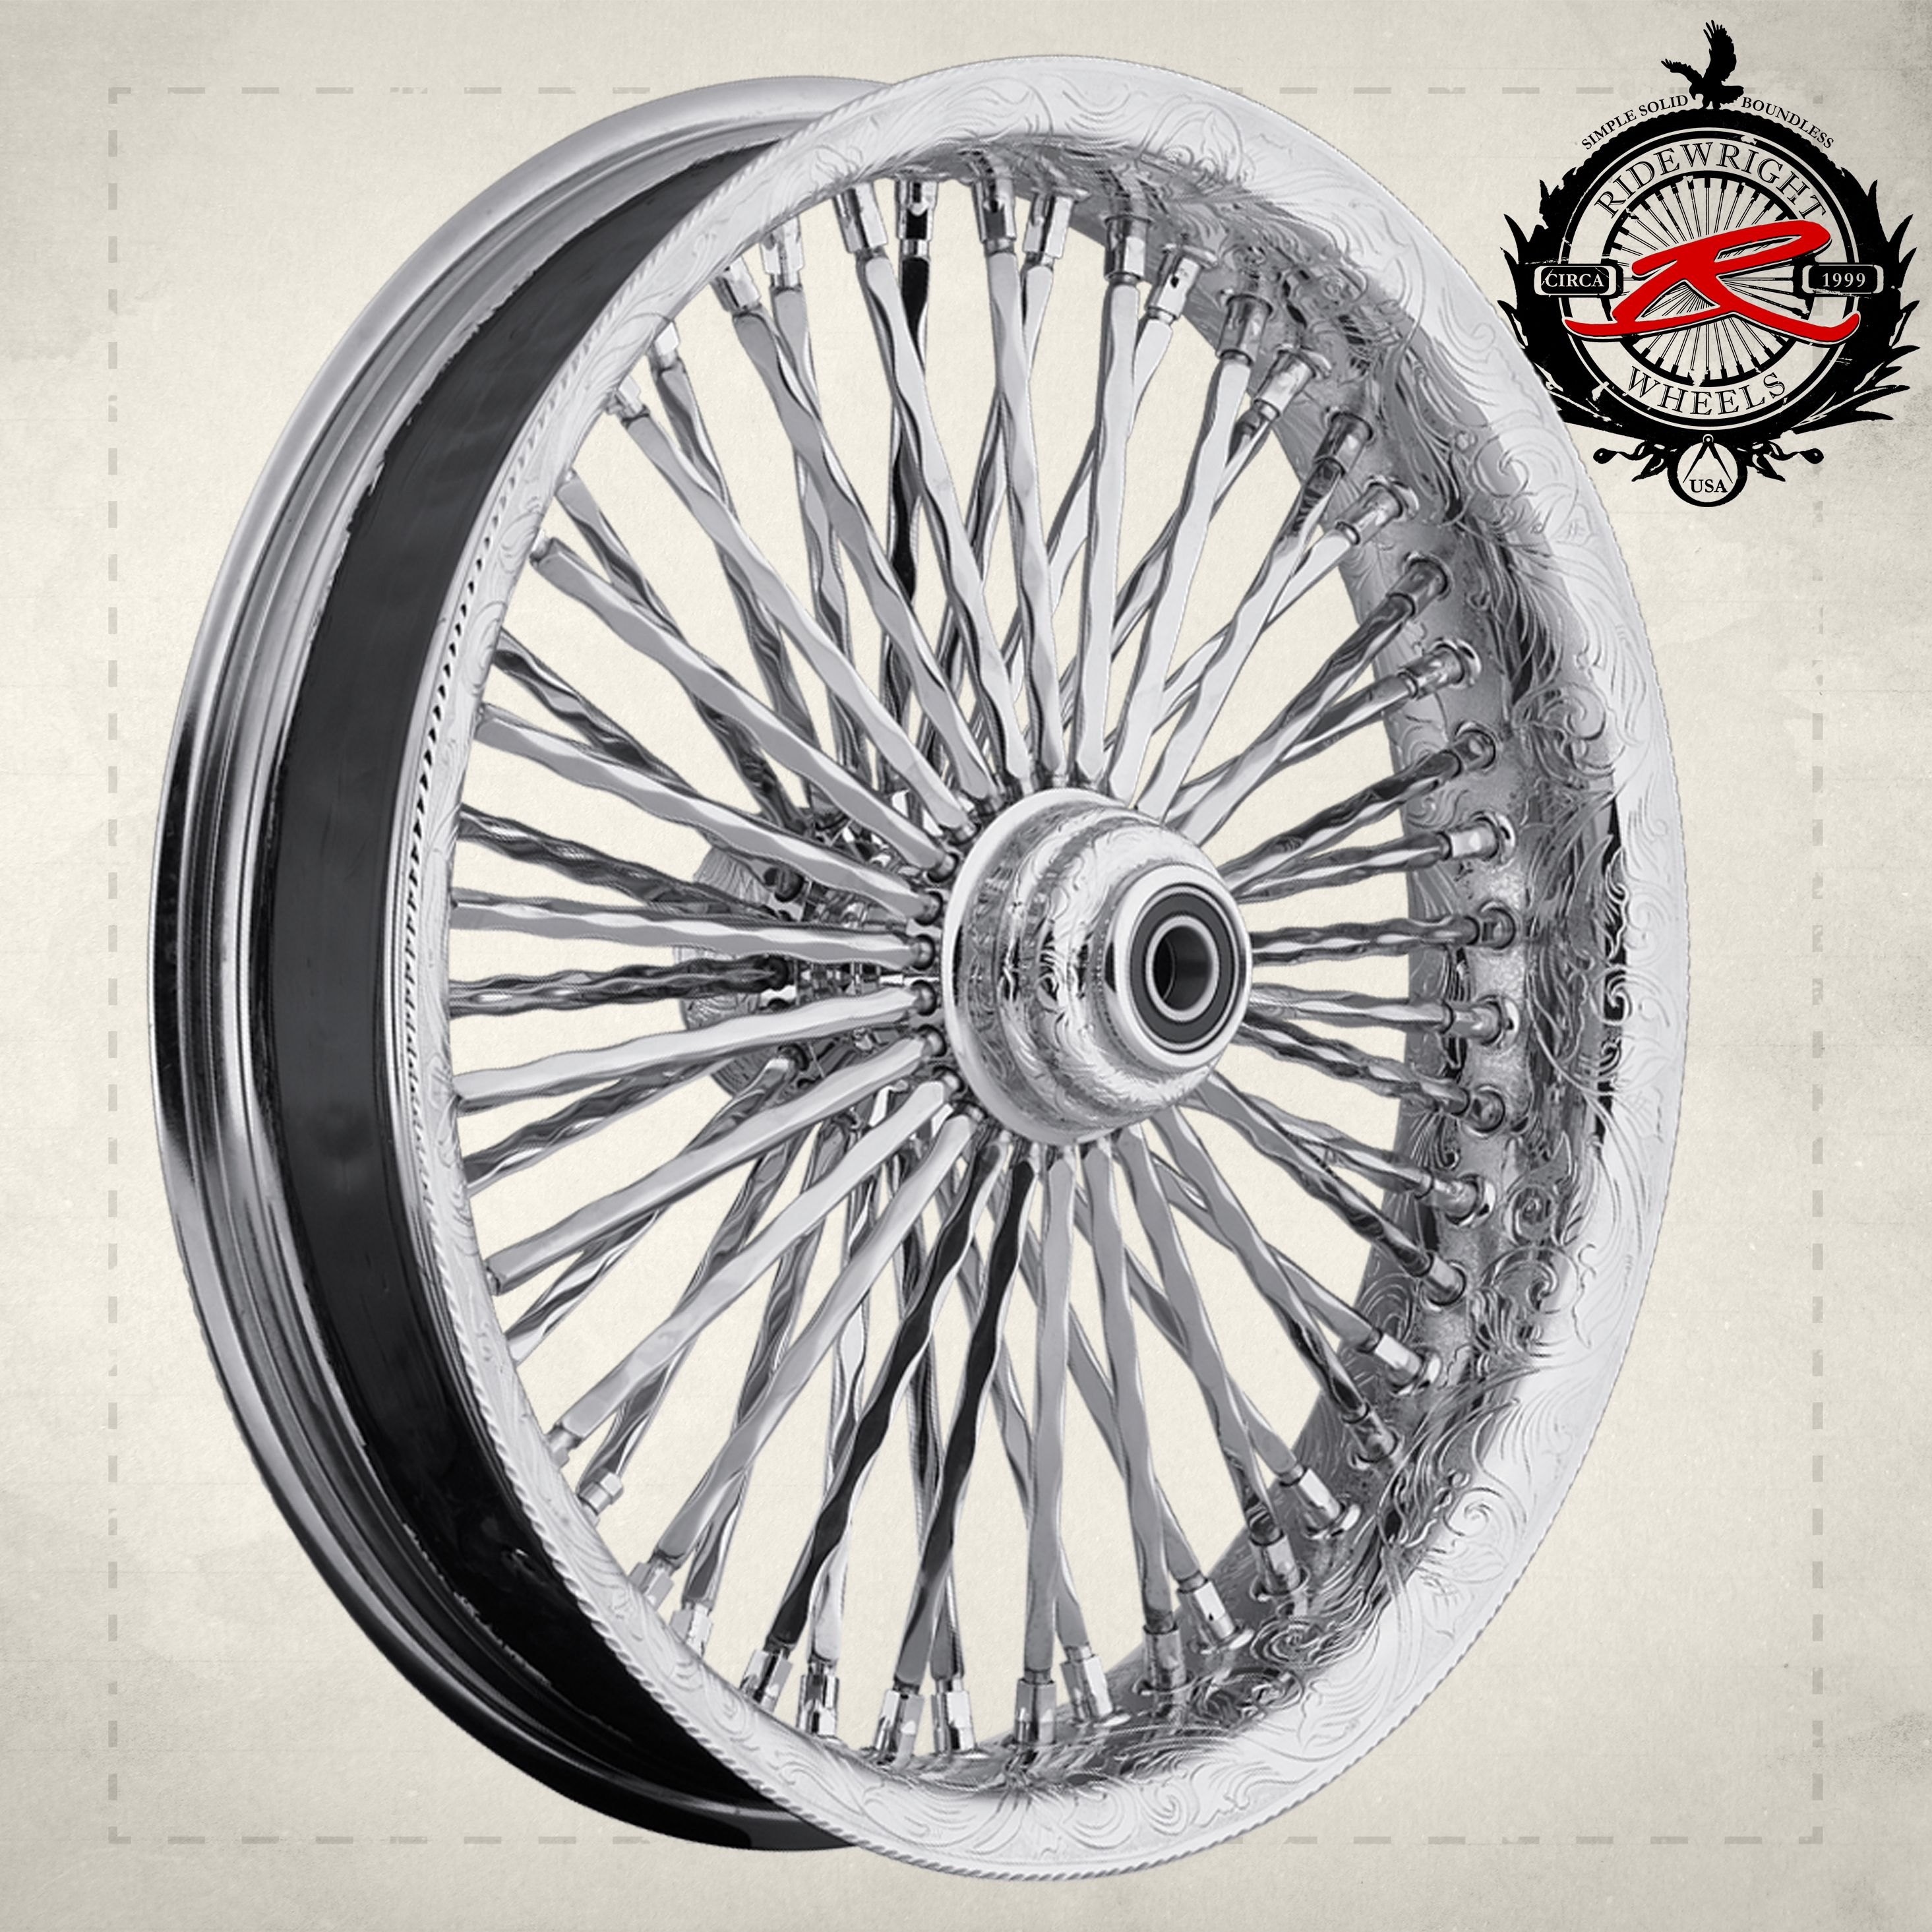 Ride wright wheels custom engraved harley davidson and other